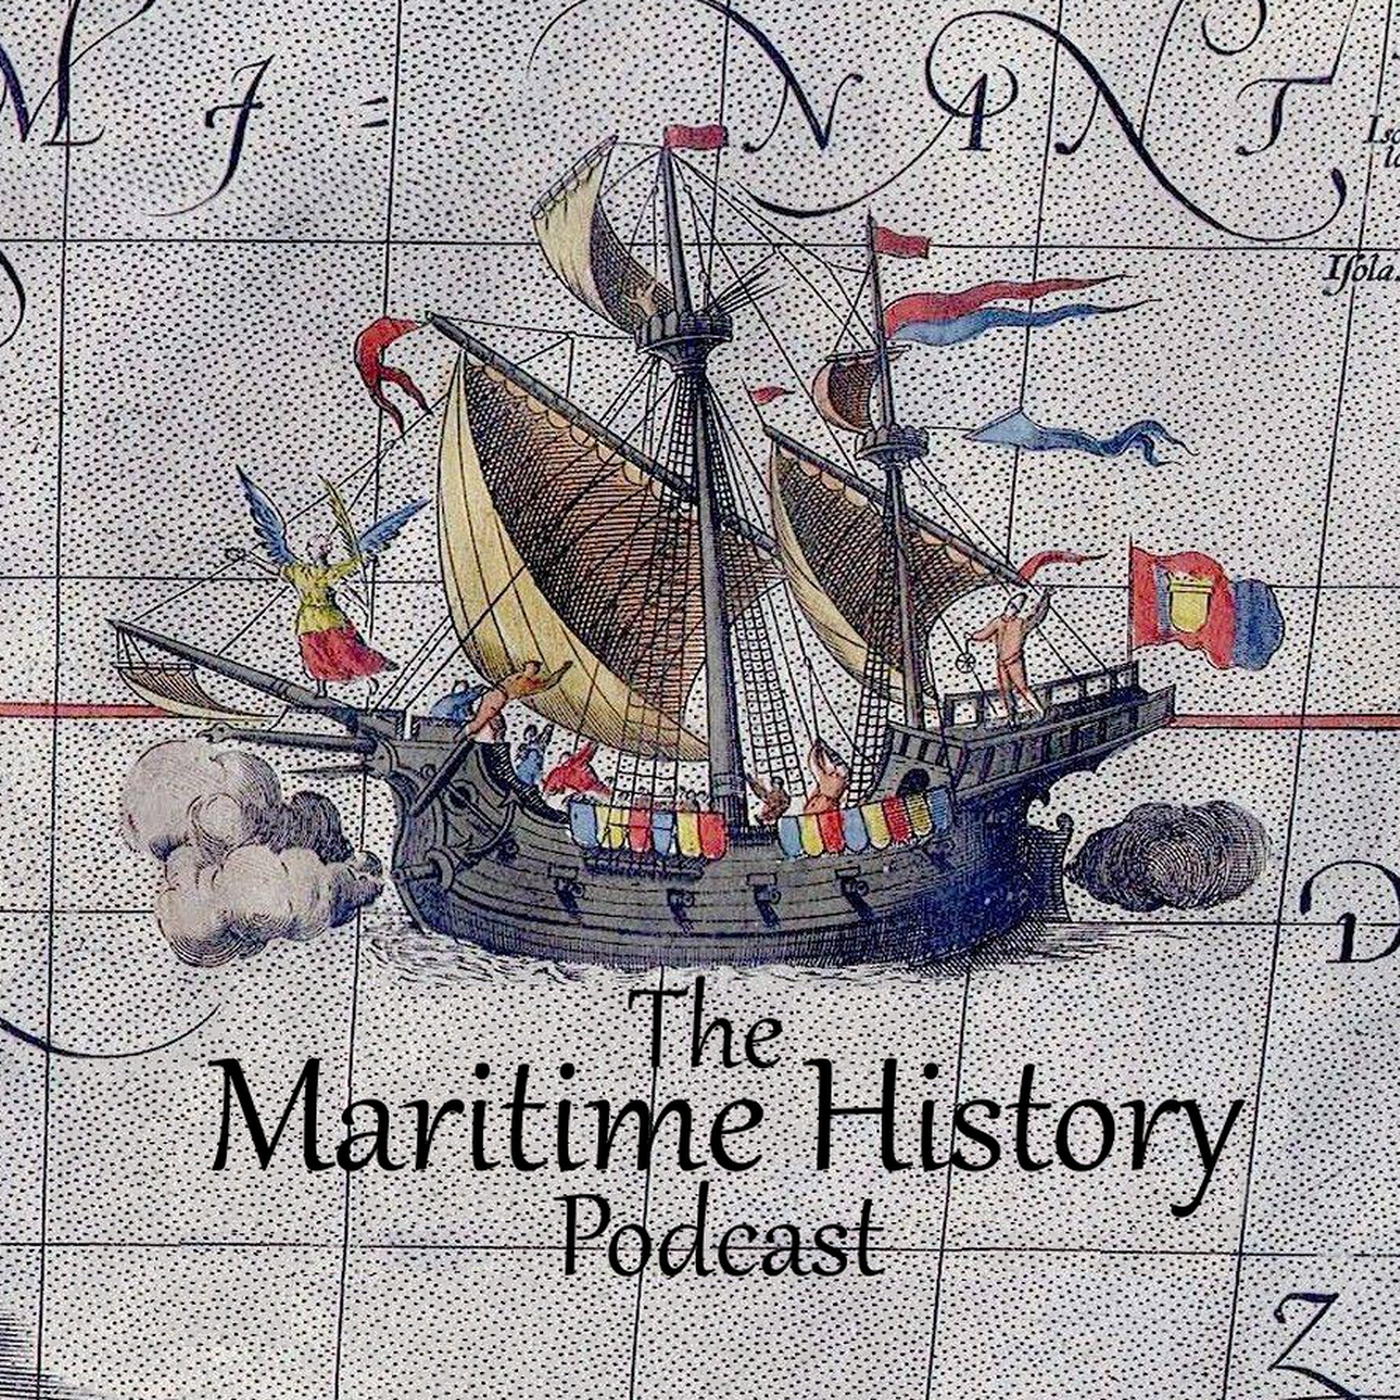 034 - Marathon and Persian Naval Power